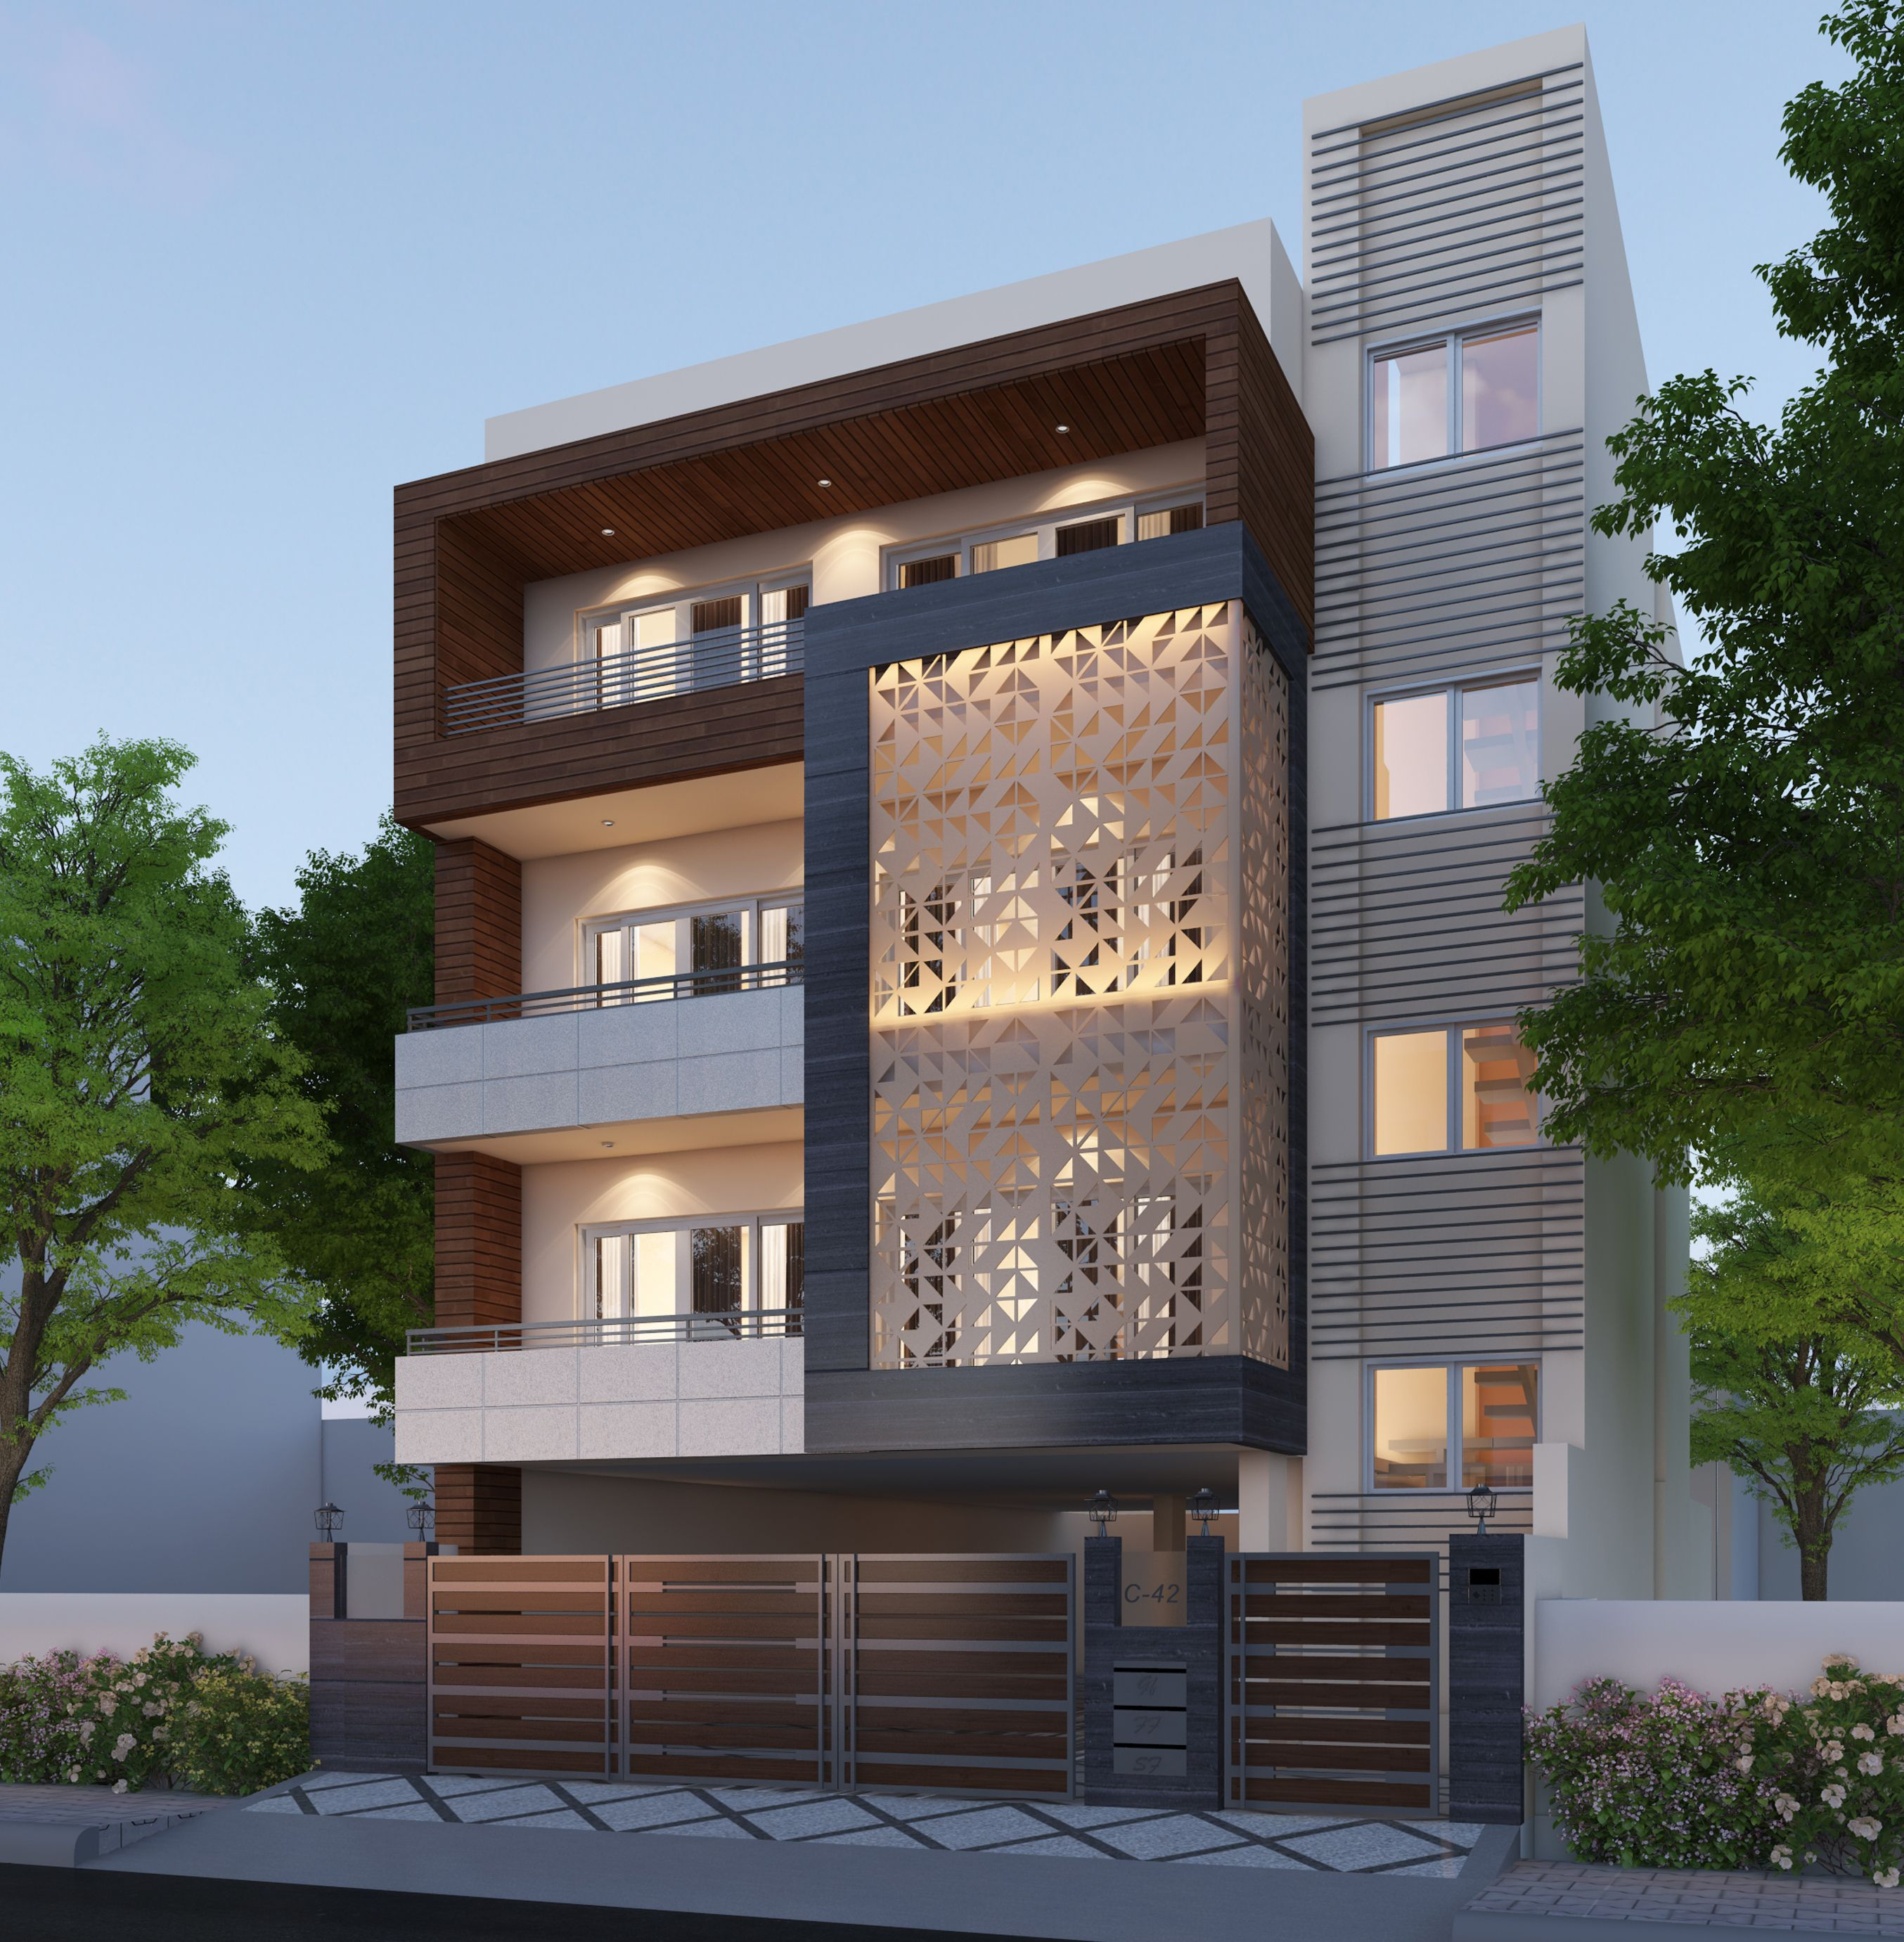 Home Facade Concept Developed By Our Architects For One Of